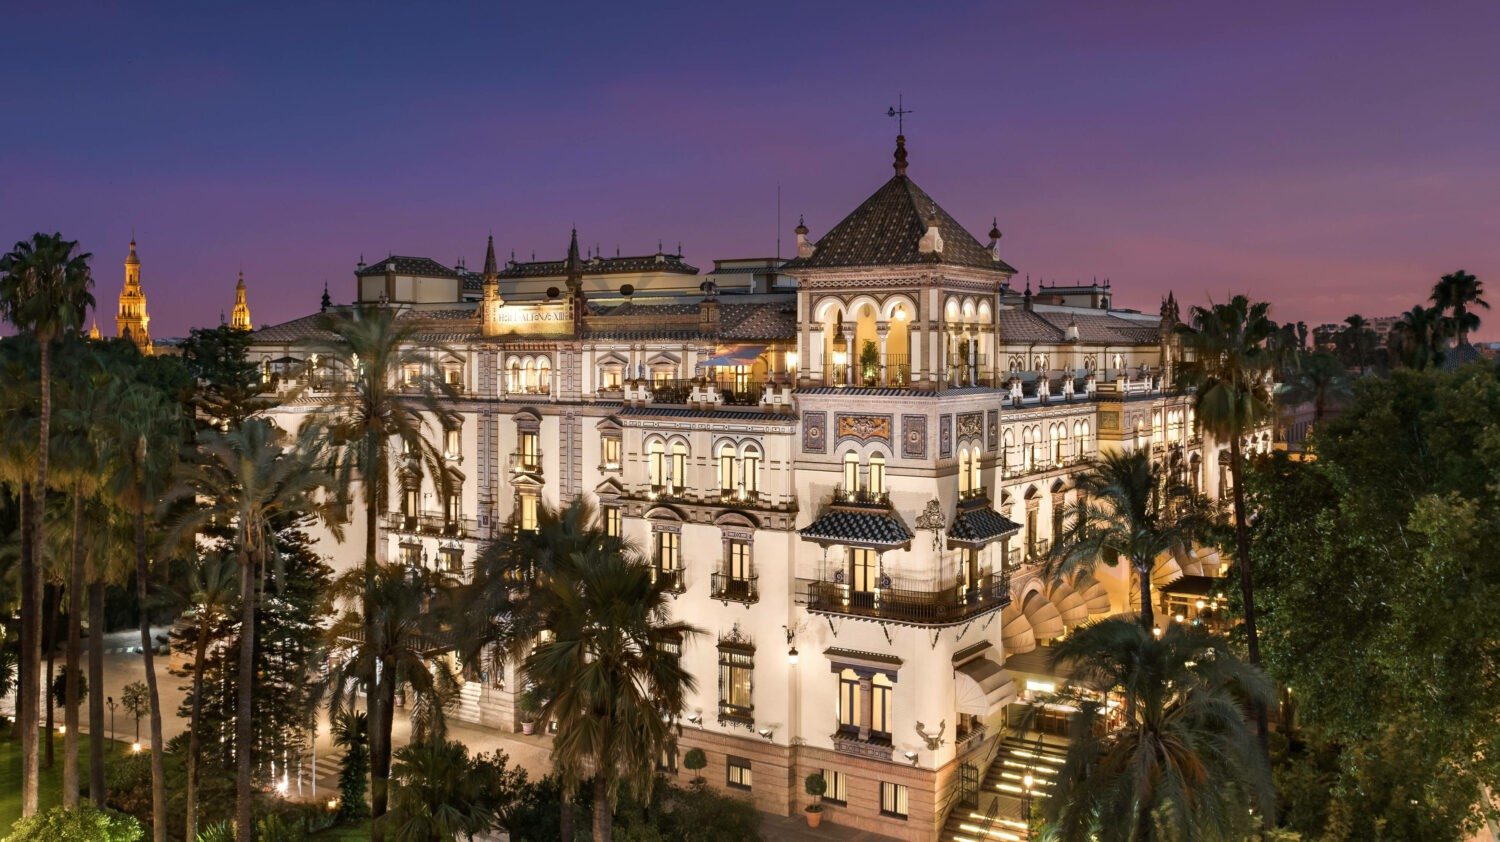 Hotel Alfonso XIII Exterior